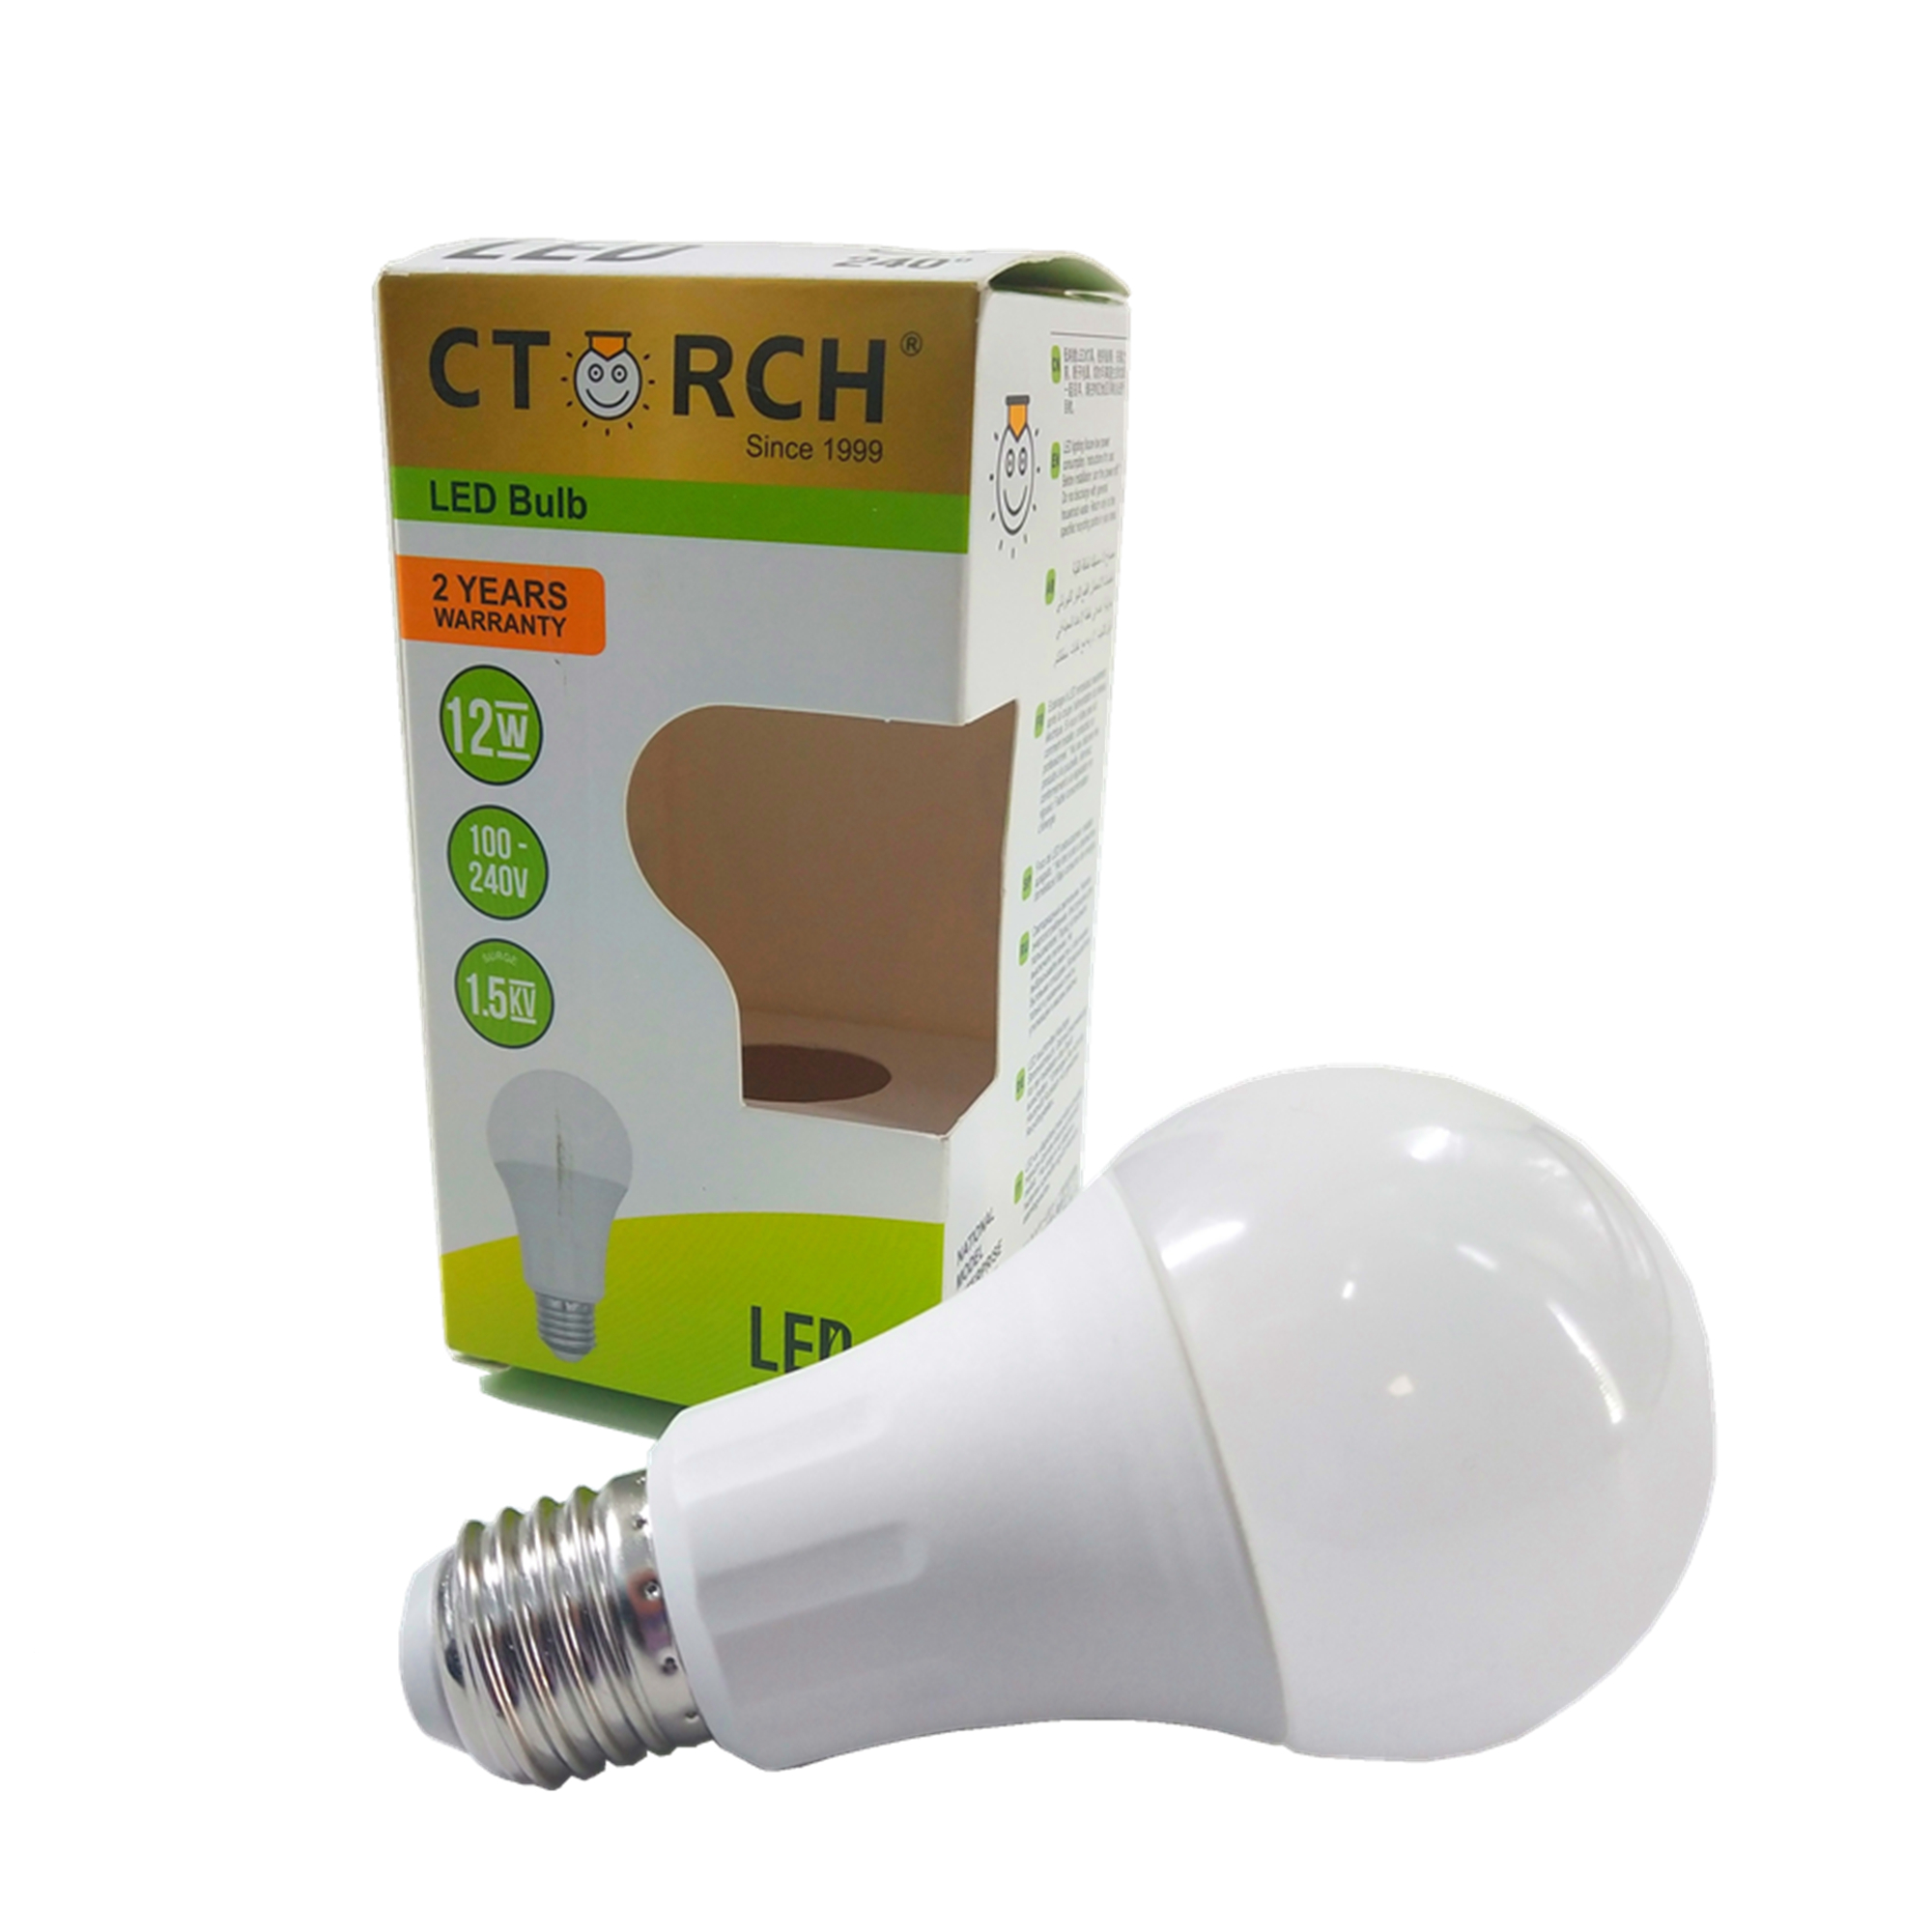 CTORCH 2020 Best Selling Light Diamond-star Series Indoor Lighting <strong>Bulb</strong> 12W A65 Raw Material LED <strong>Bulbs</strong> Manufacturer